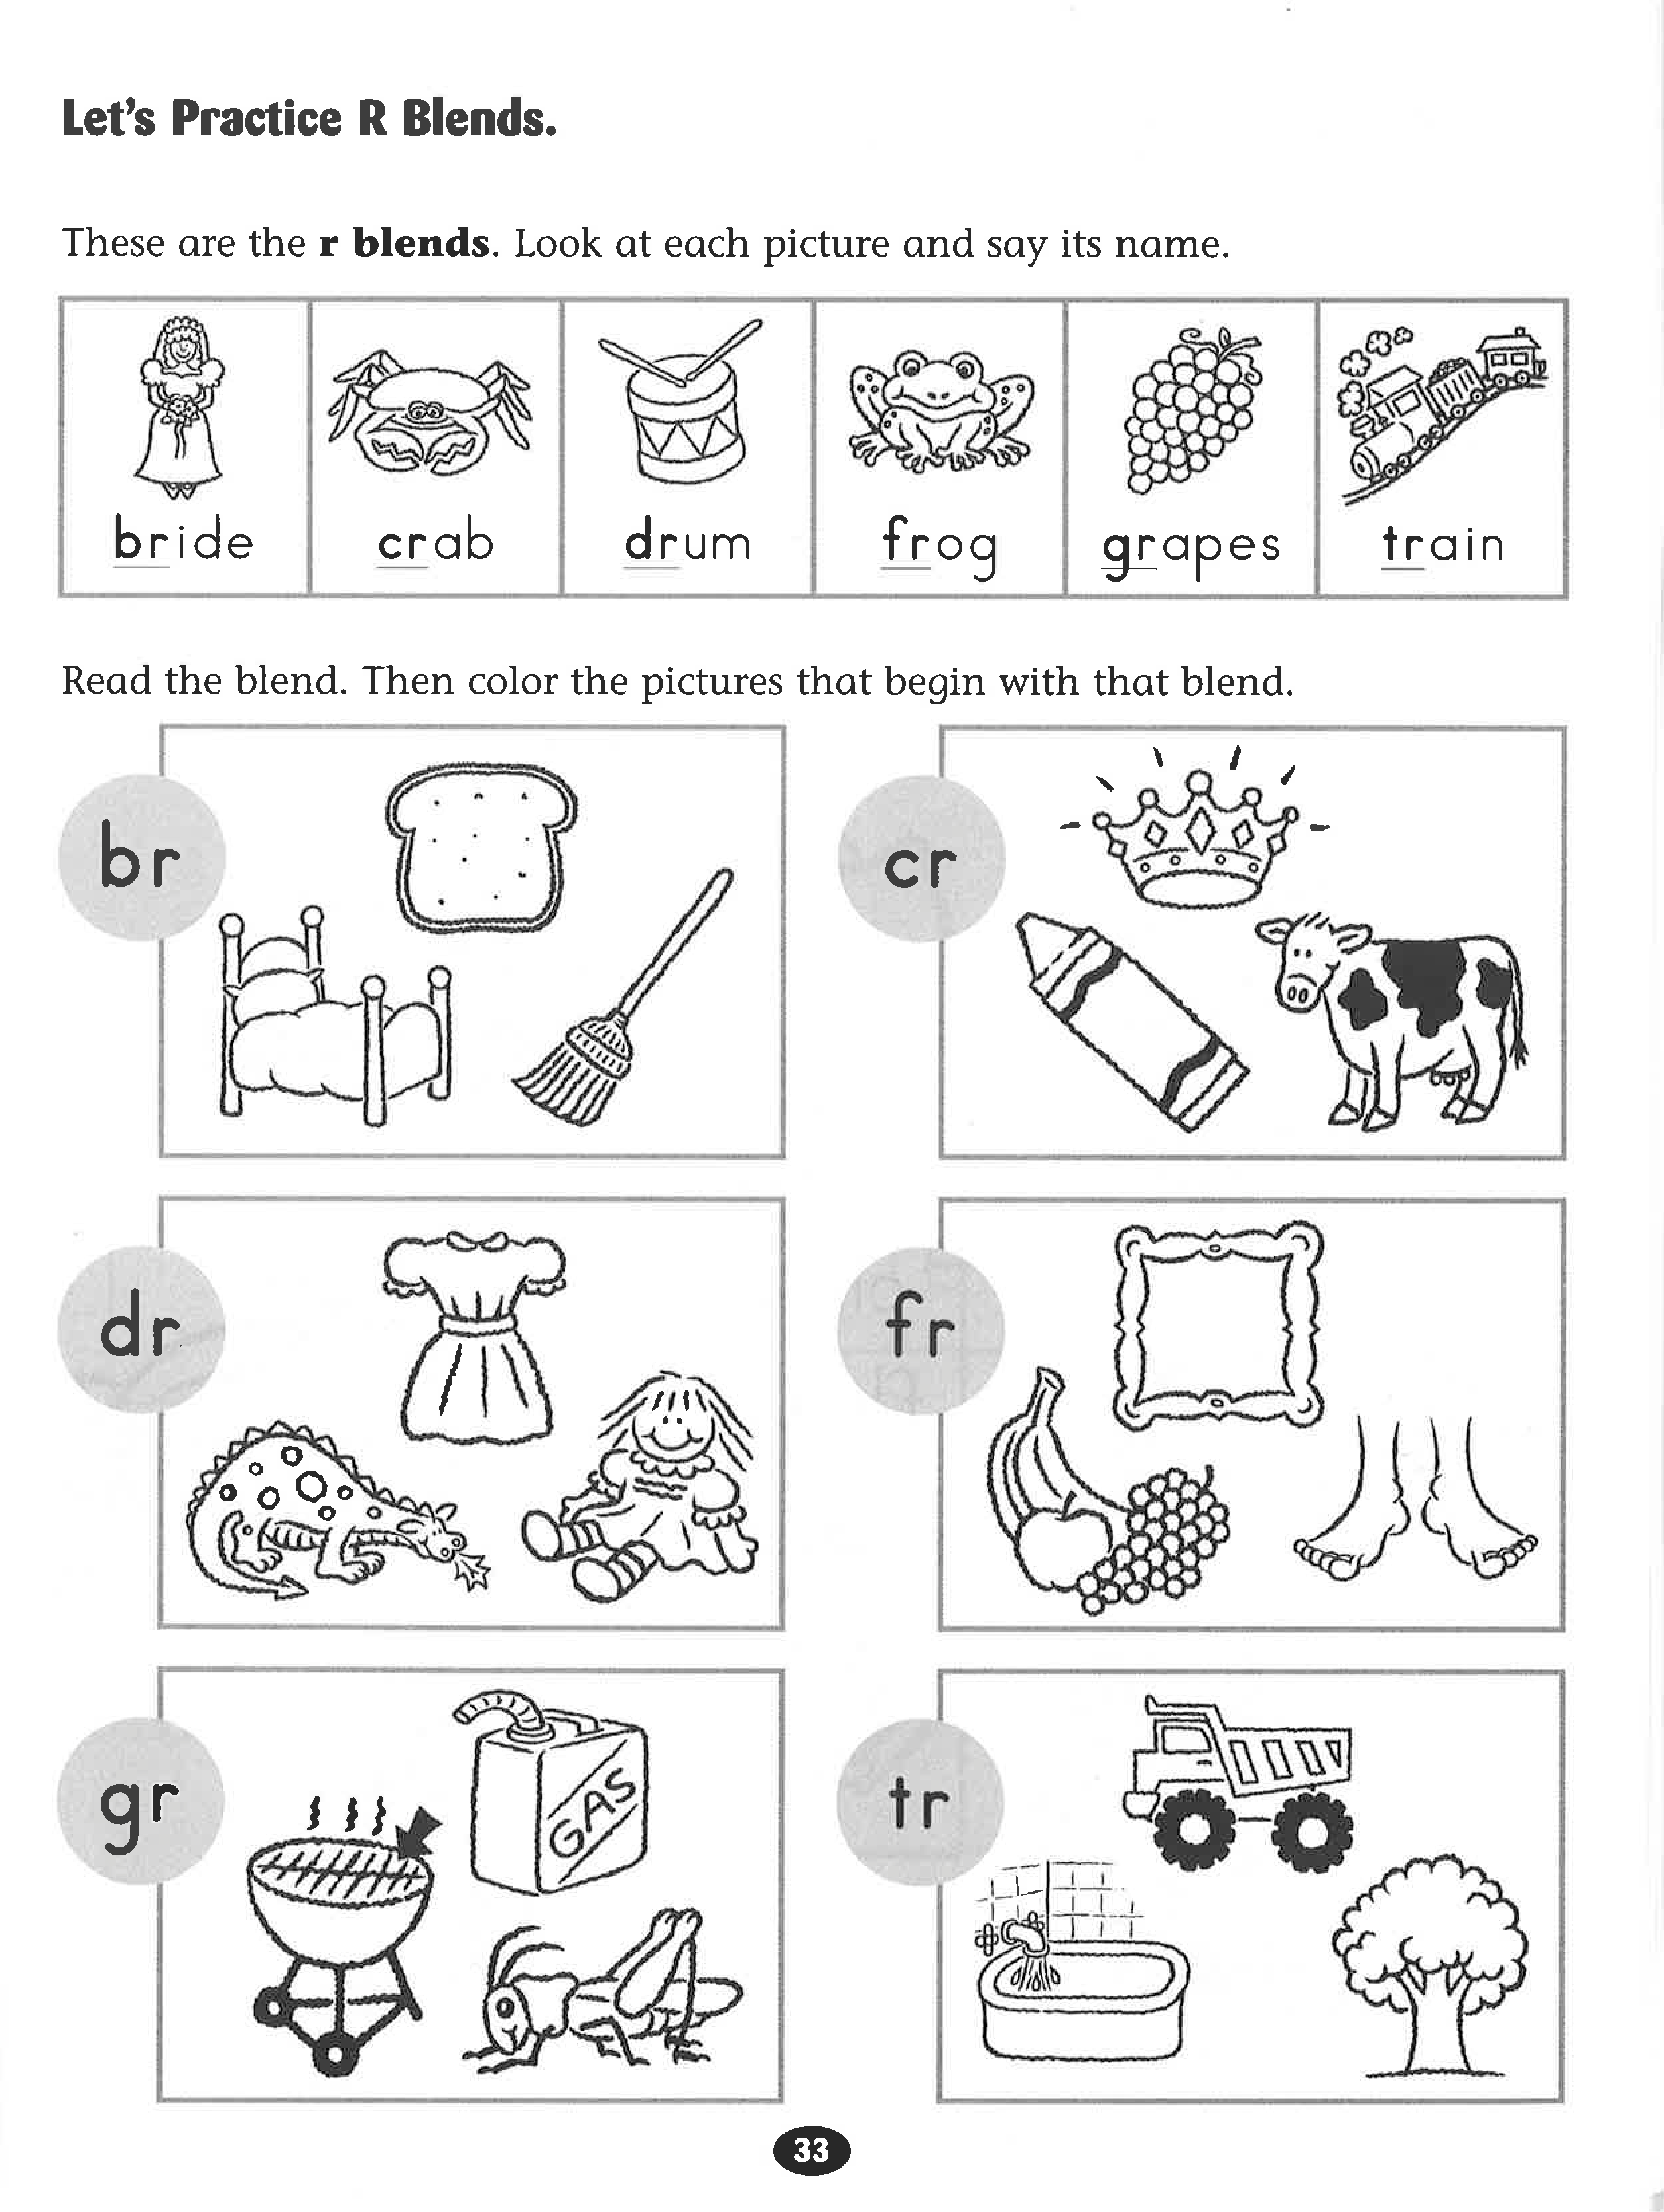 worksheet S Blends Worksheet lets practice r blends worksheet rockin reading tips and tricks worksheet